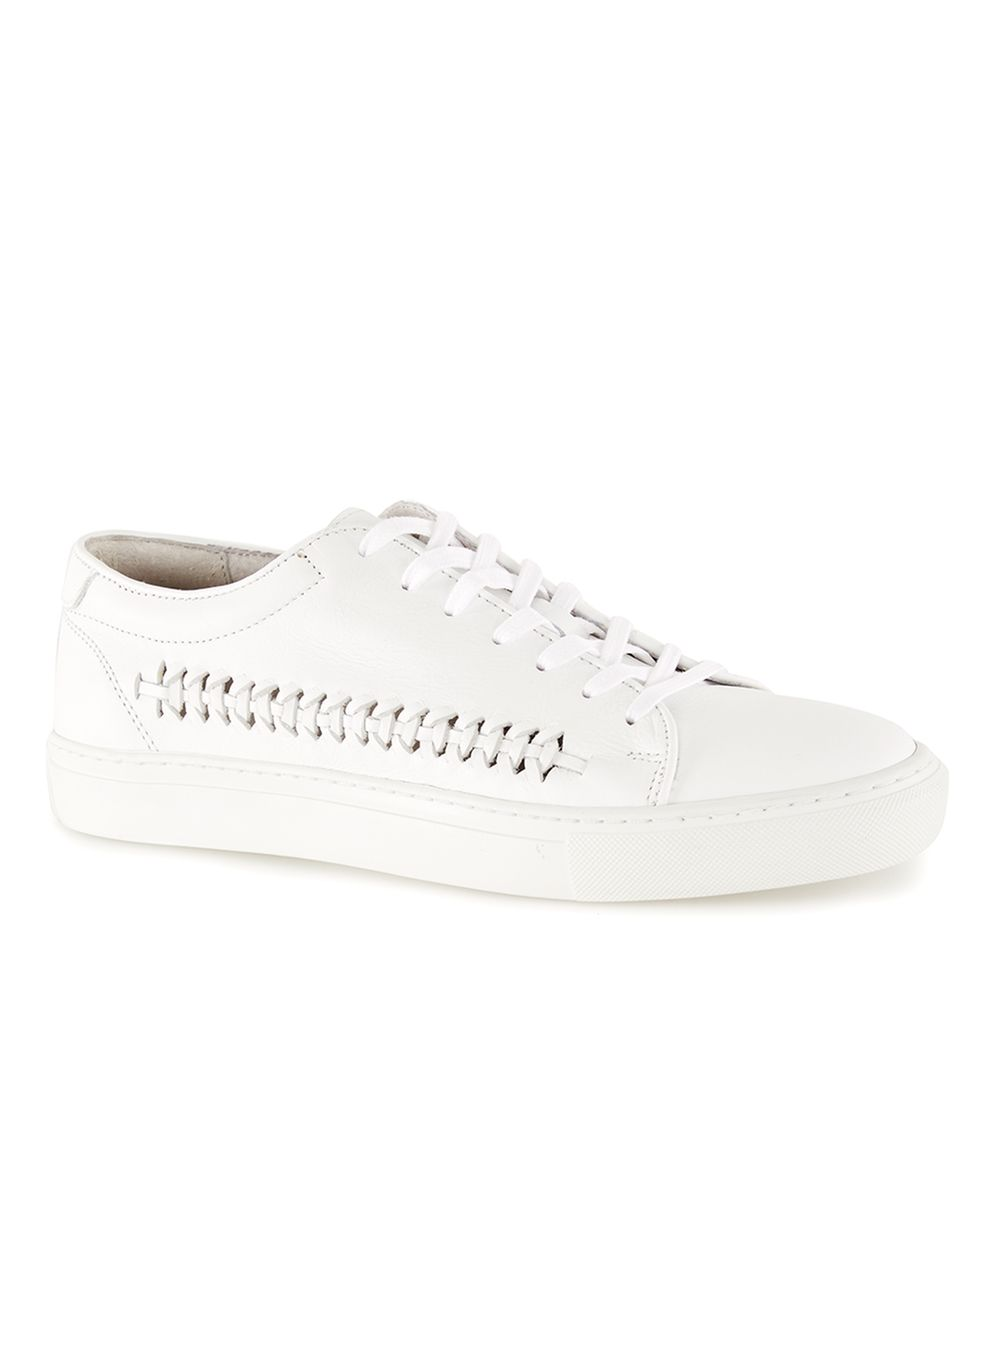 topman-suit-torn-paper-print-ss-woven-woven-leather-sneakers.jpg